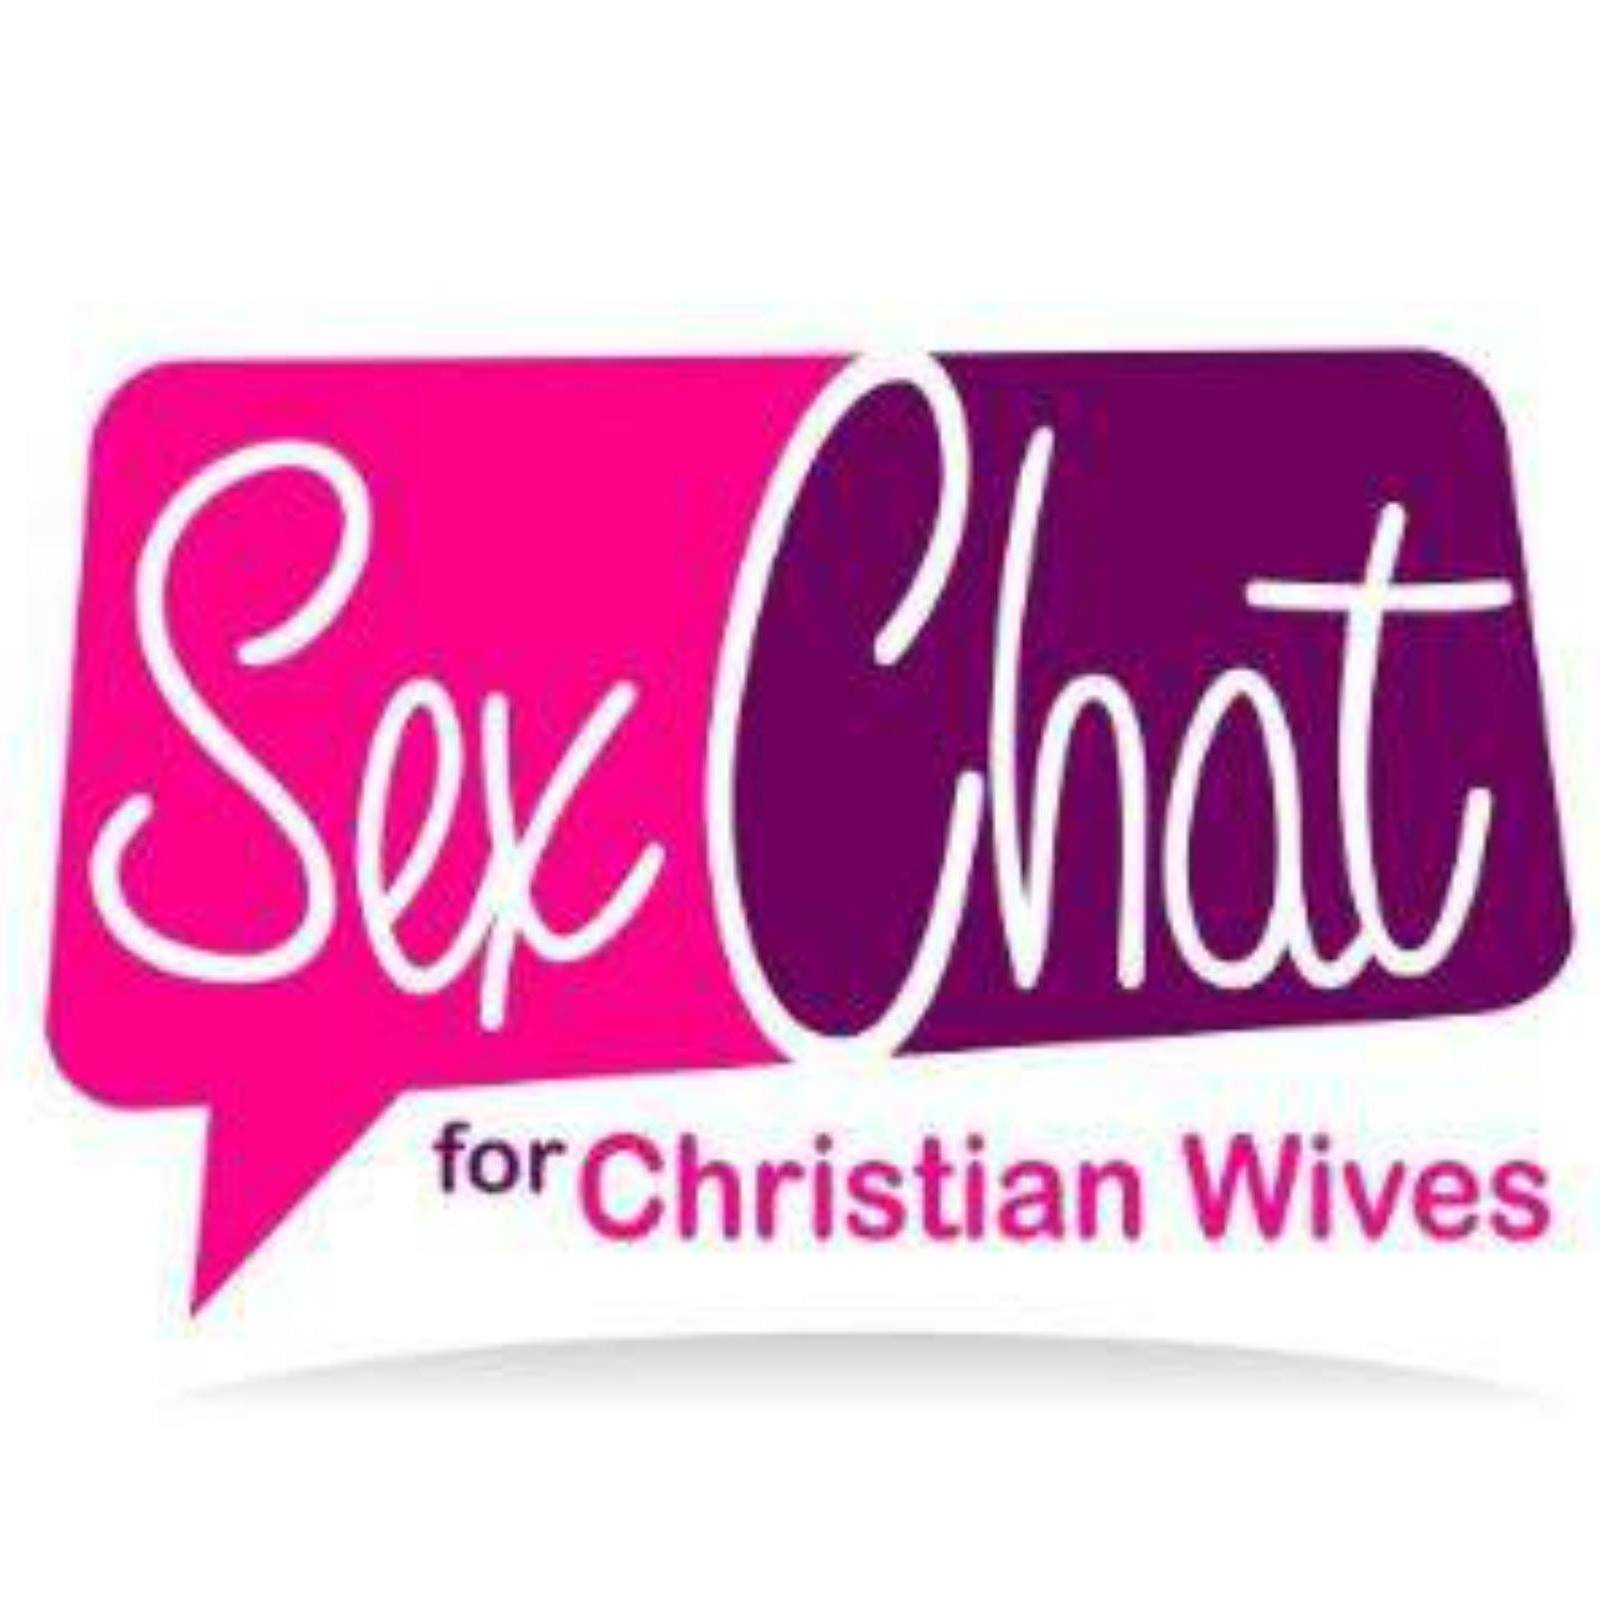 Sexy chat live